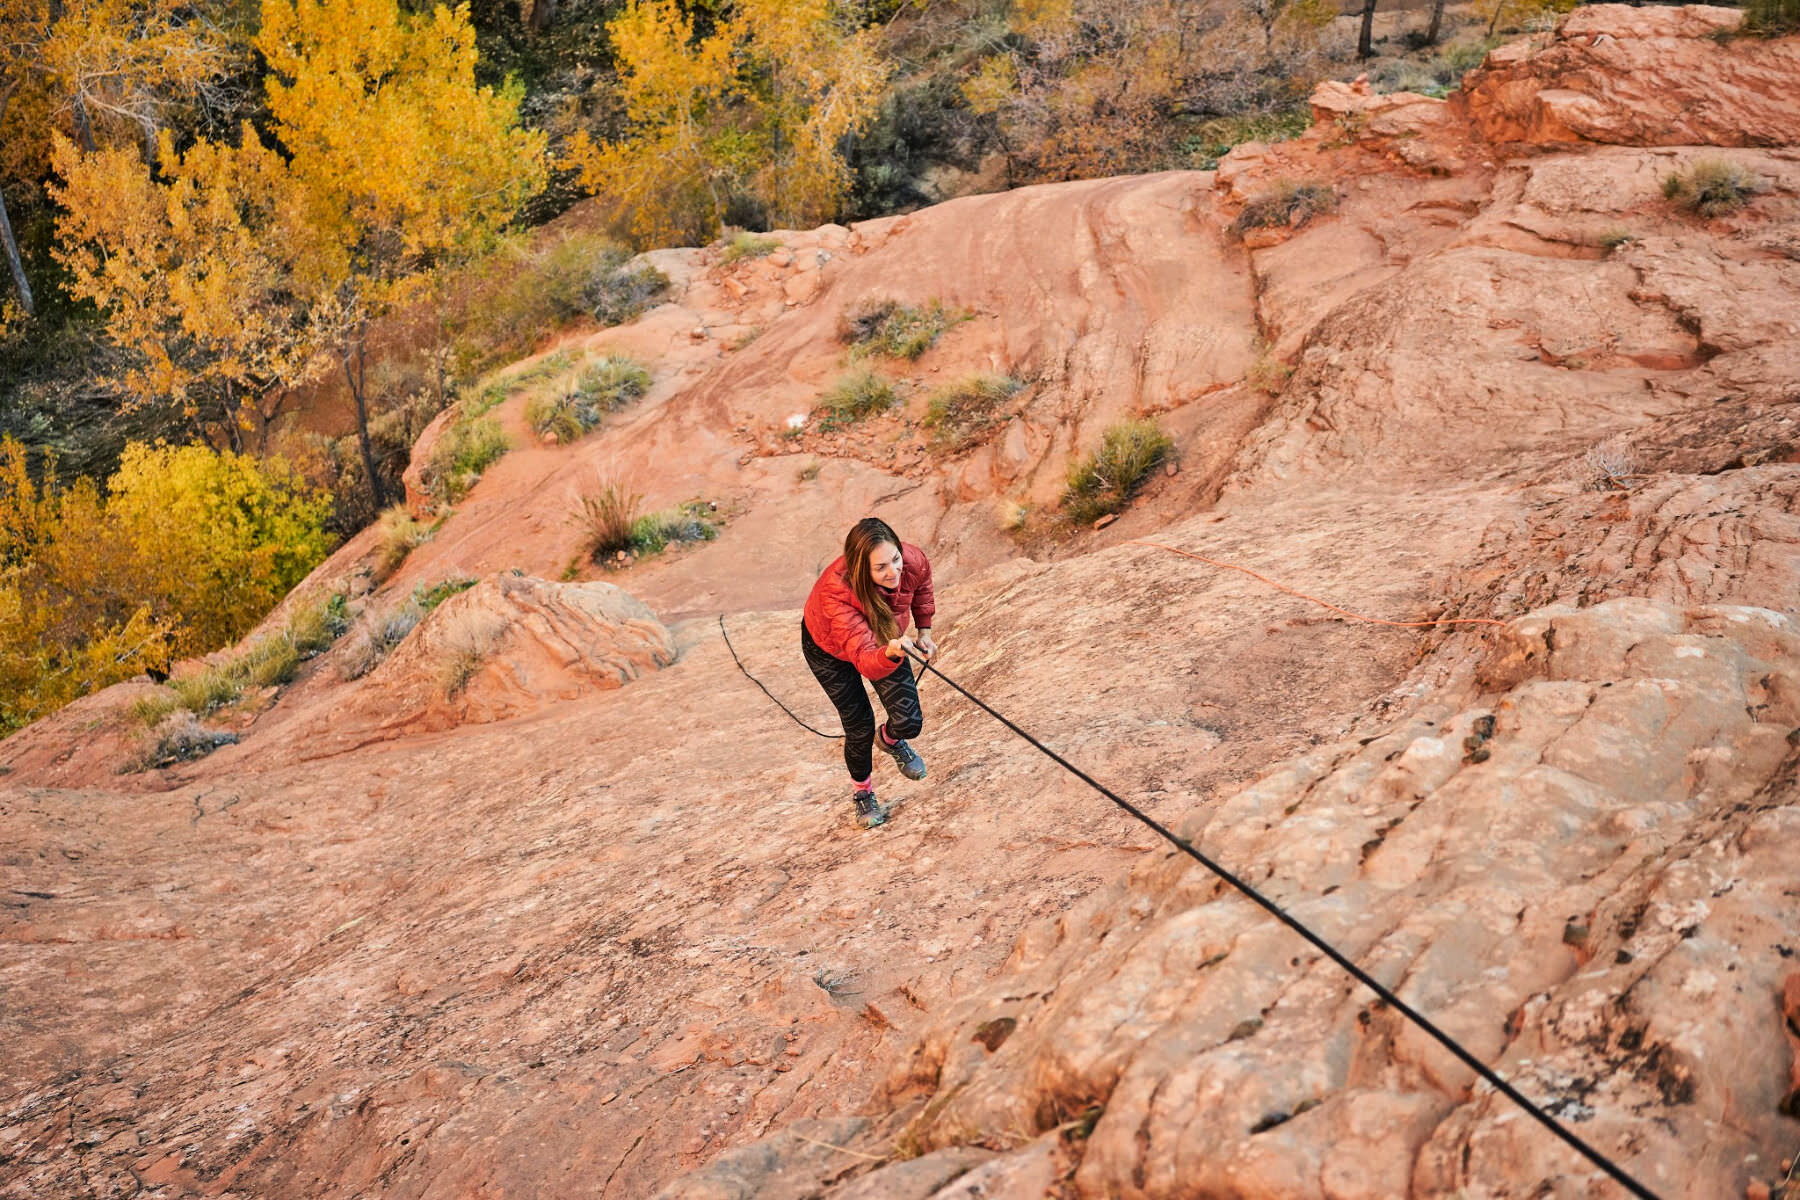 The Ultimate Guide to Backpacking Coyote Gulch - by Amanda Outside. This blog post covers everything you need to know when planning a backpacking trip to Coyote Gulch in Utah. www.amandaoutside.com